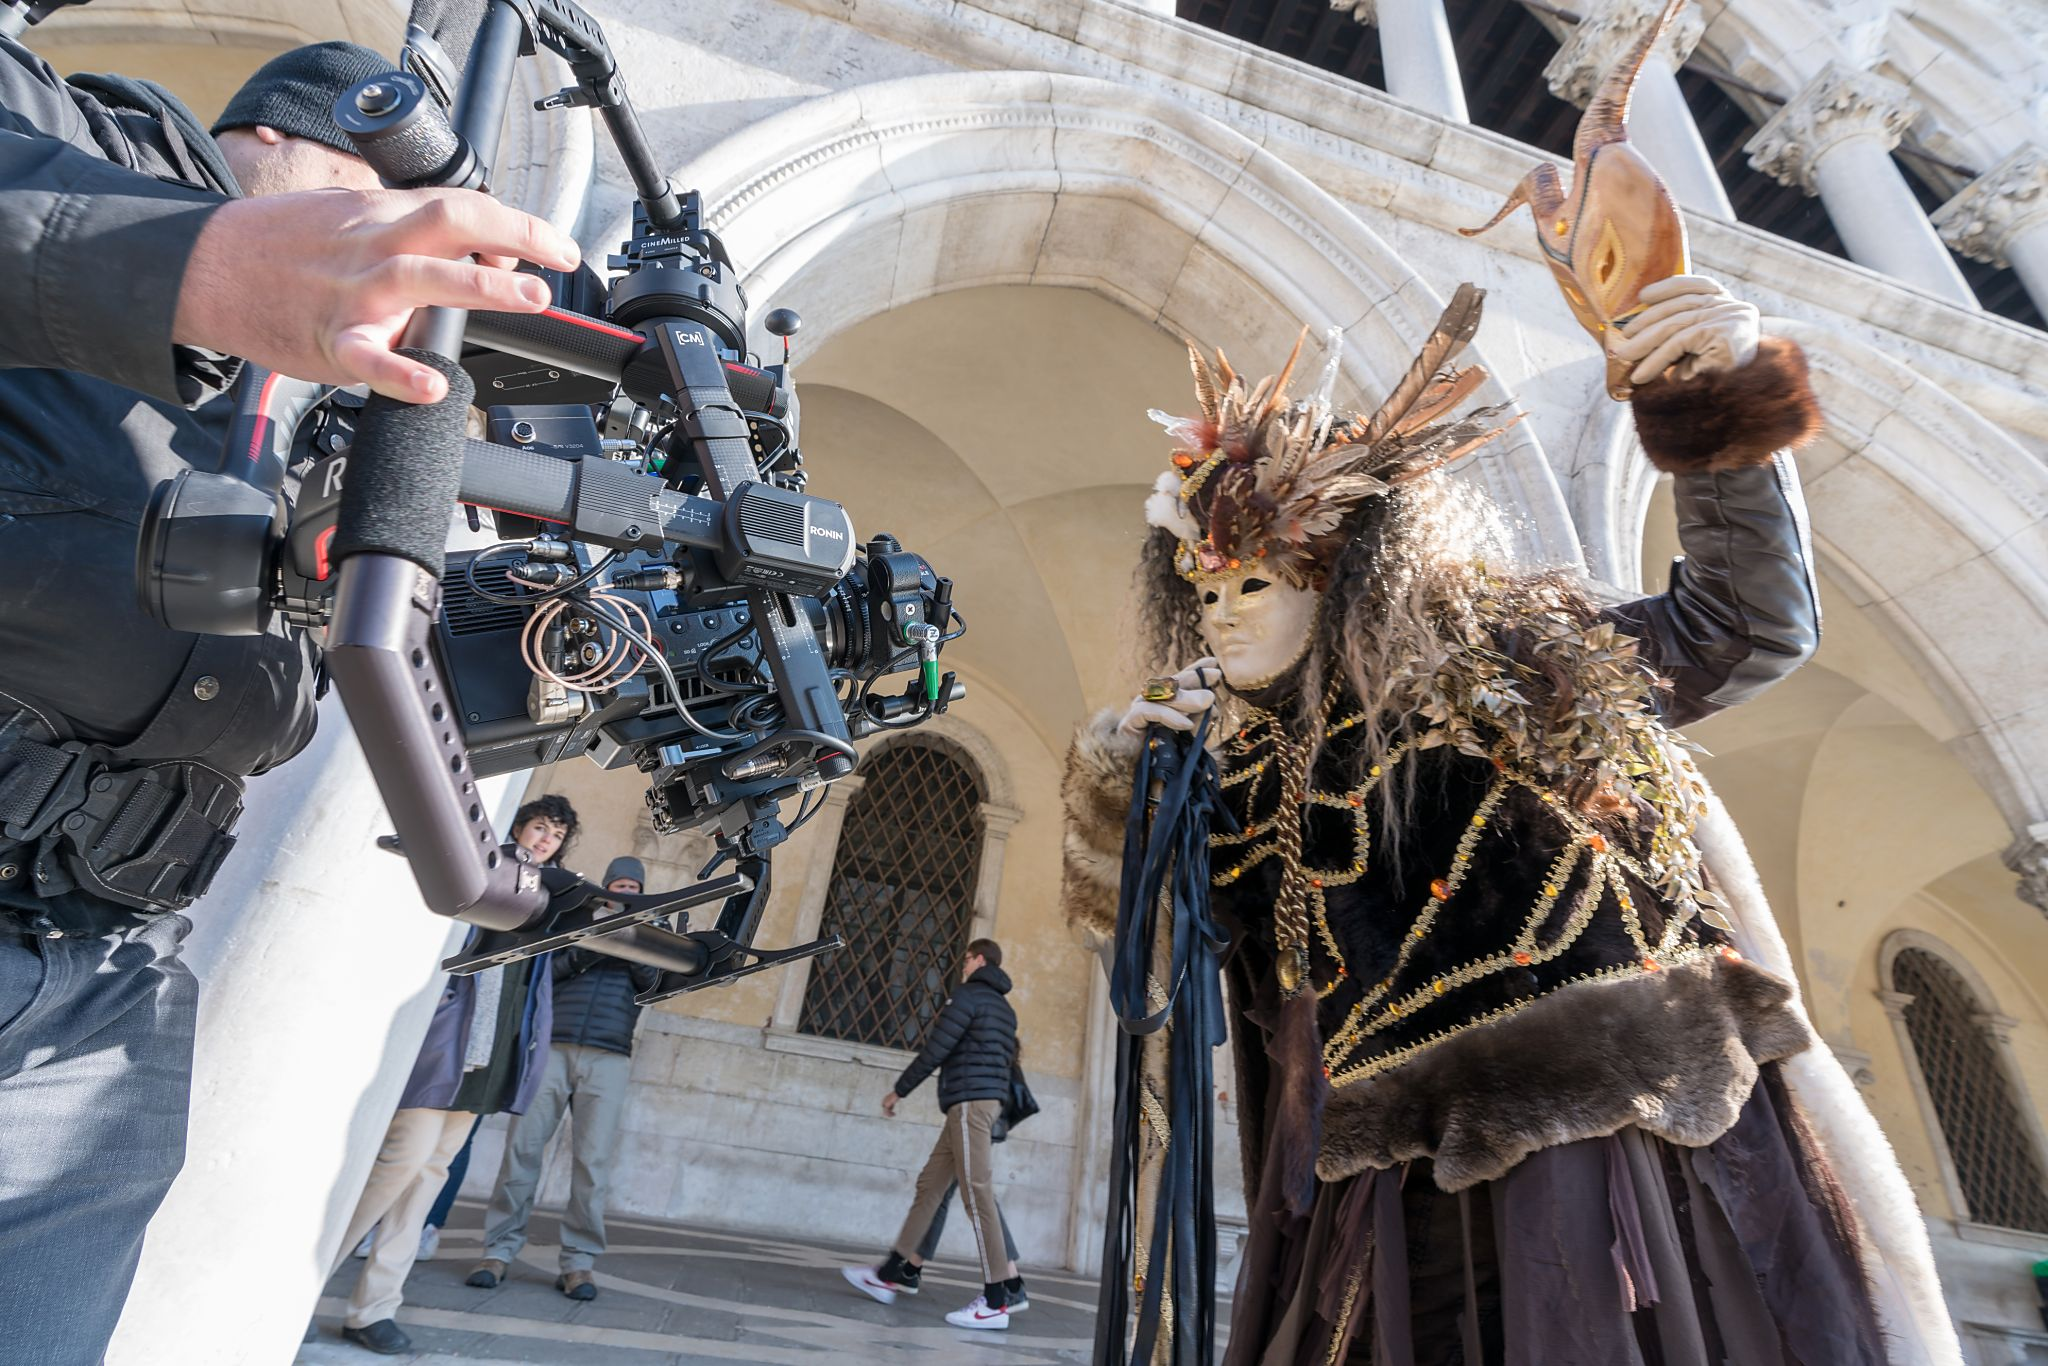 Shooting Carnival in Venice